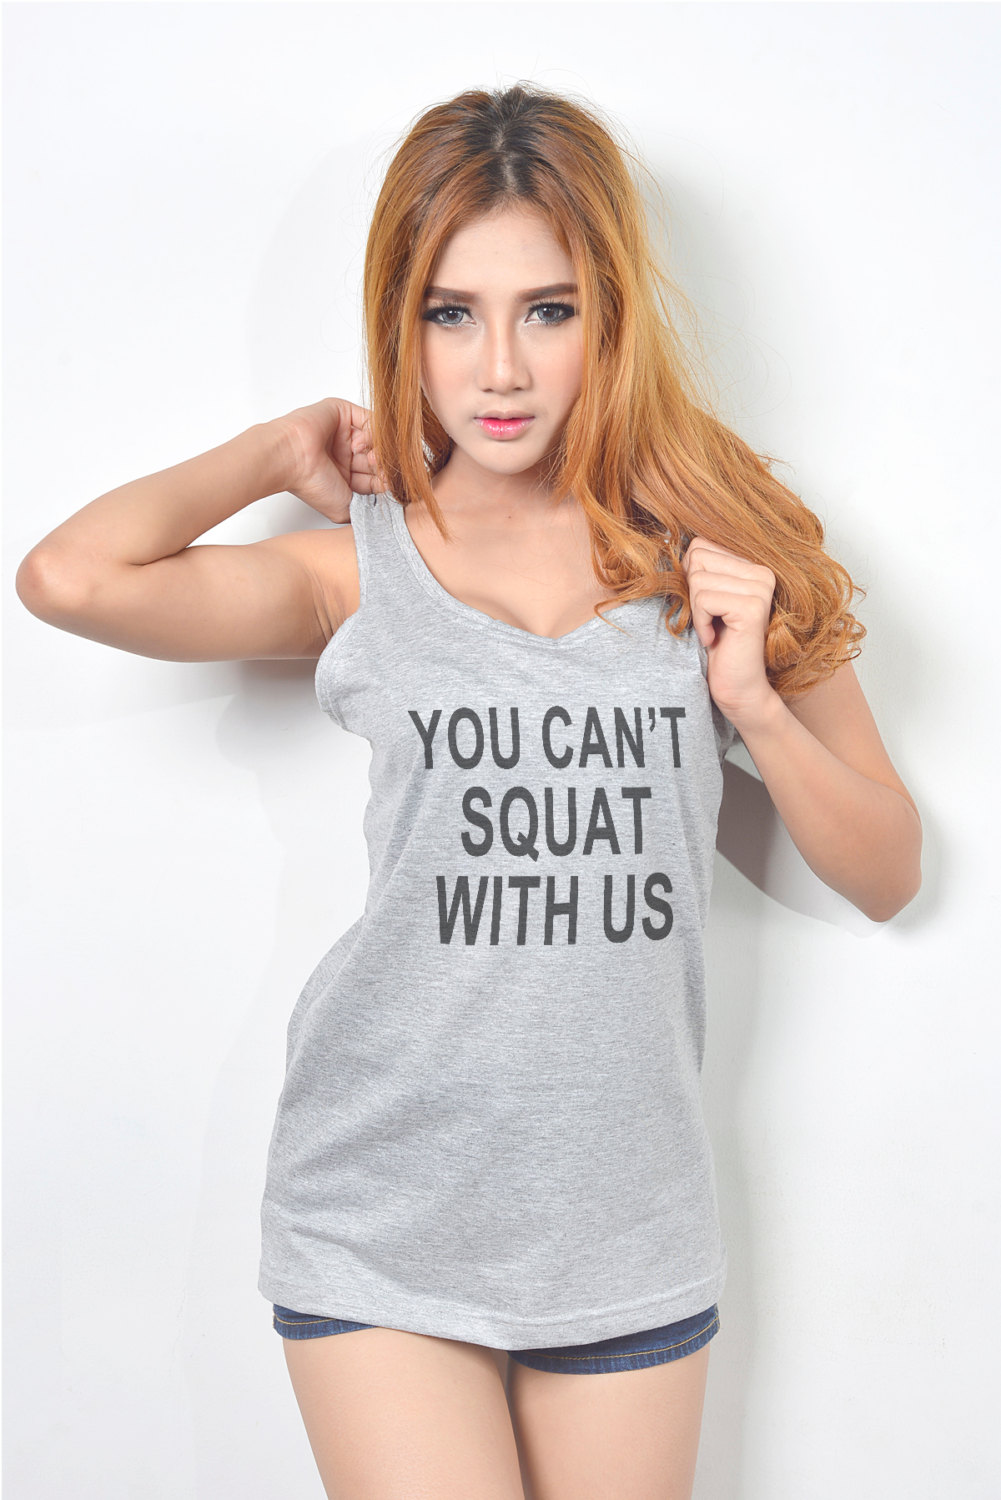 You Cant Squat With Us Tank Top Women Workout Tank Tops